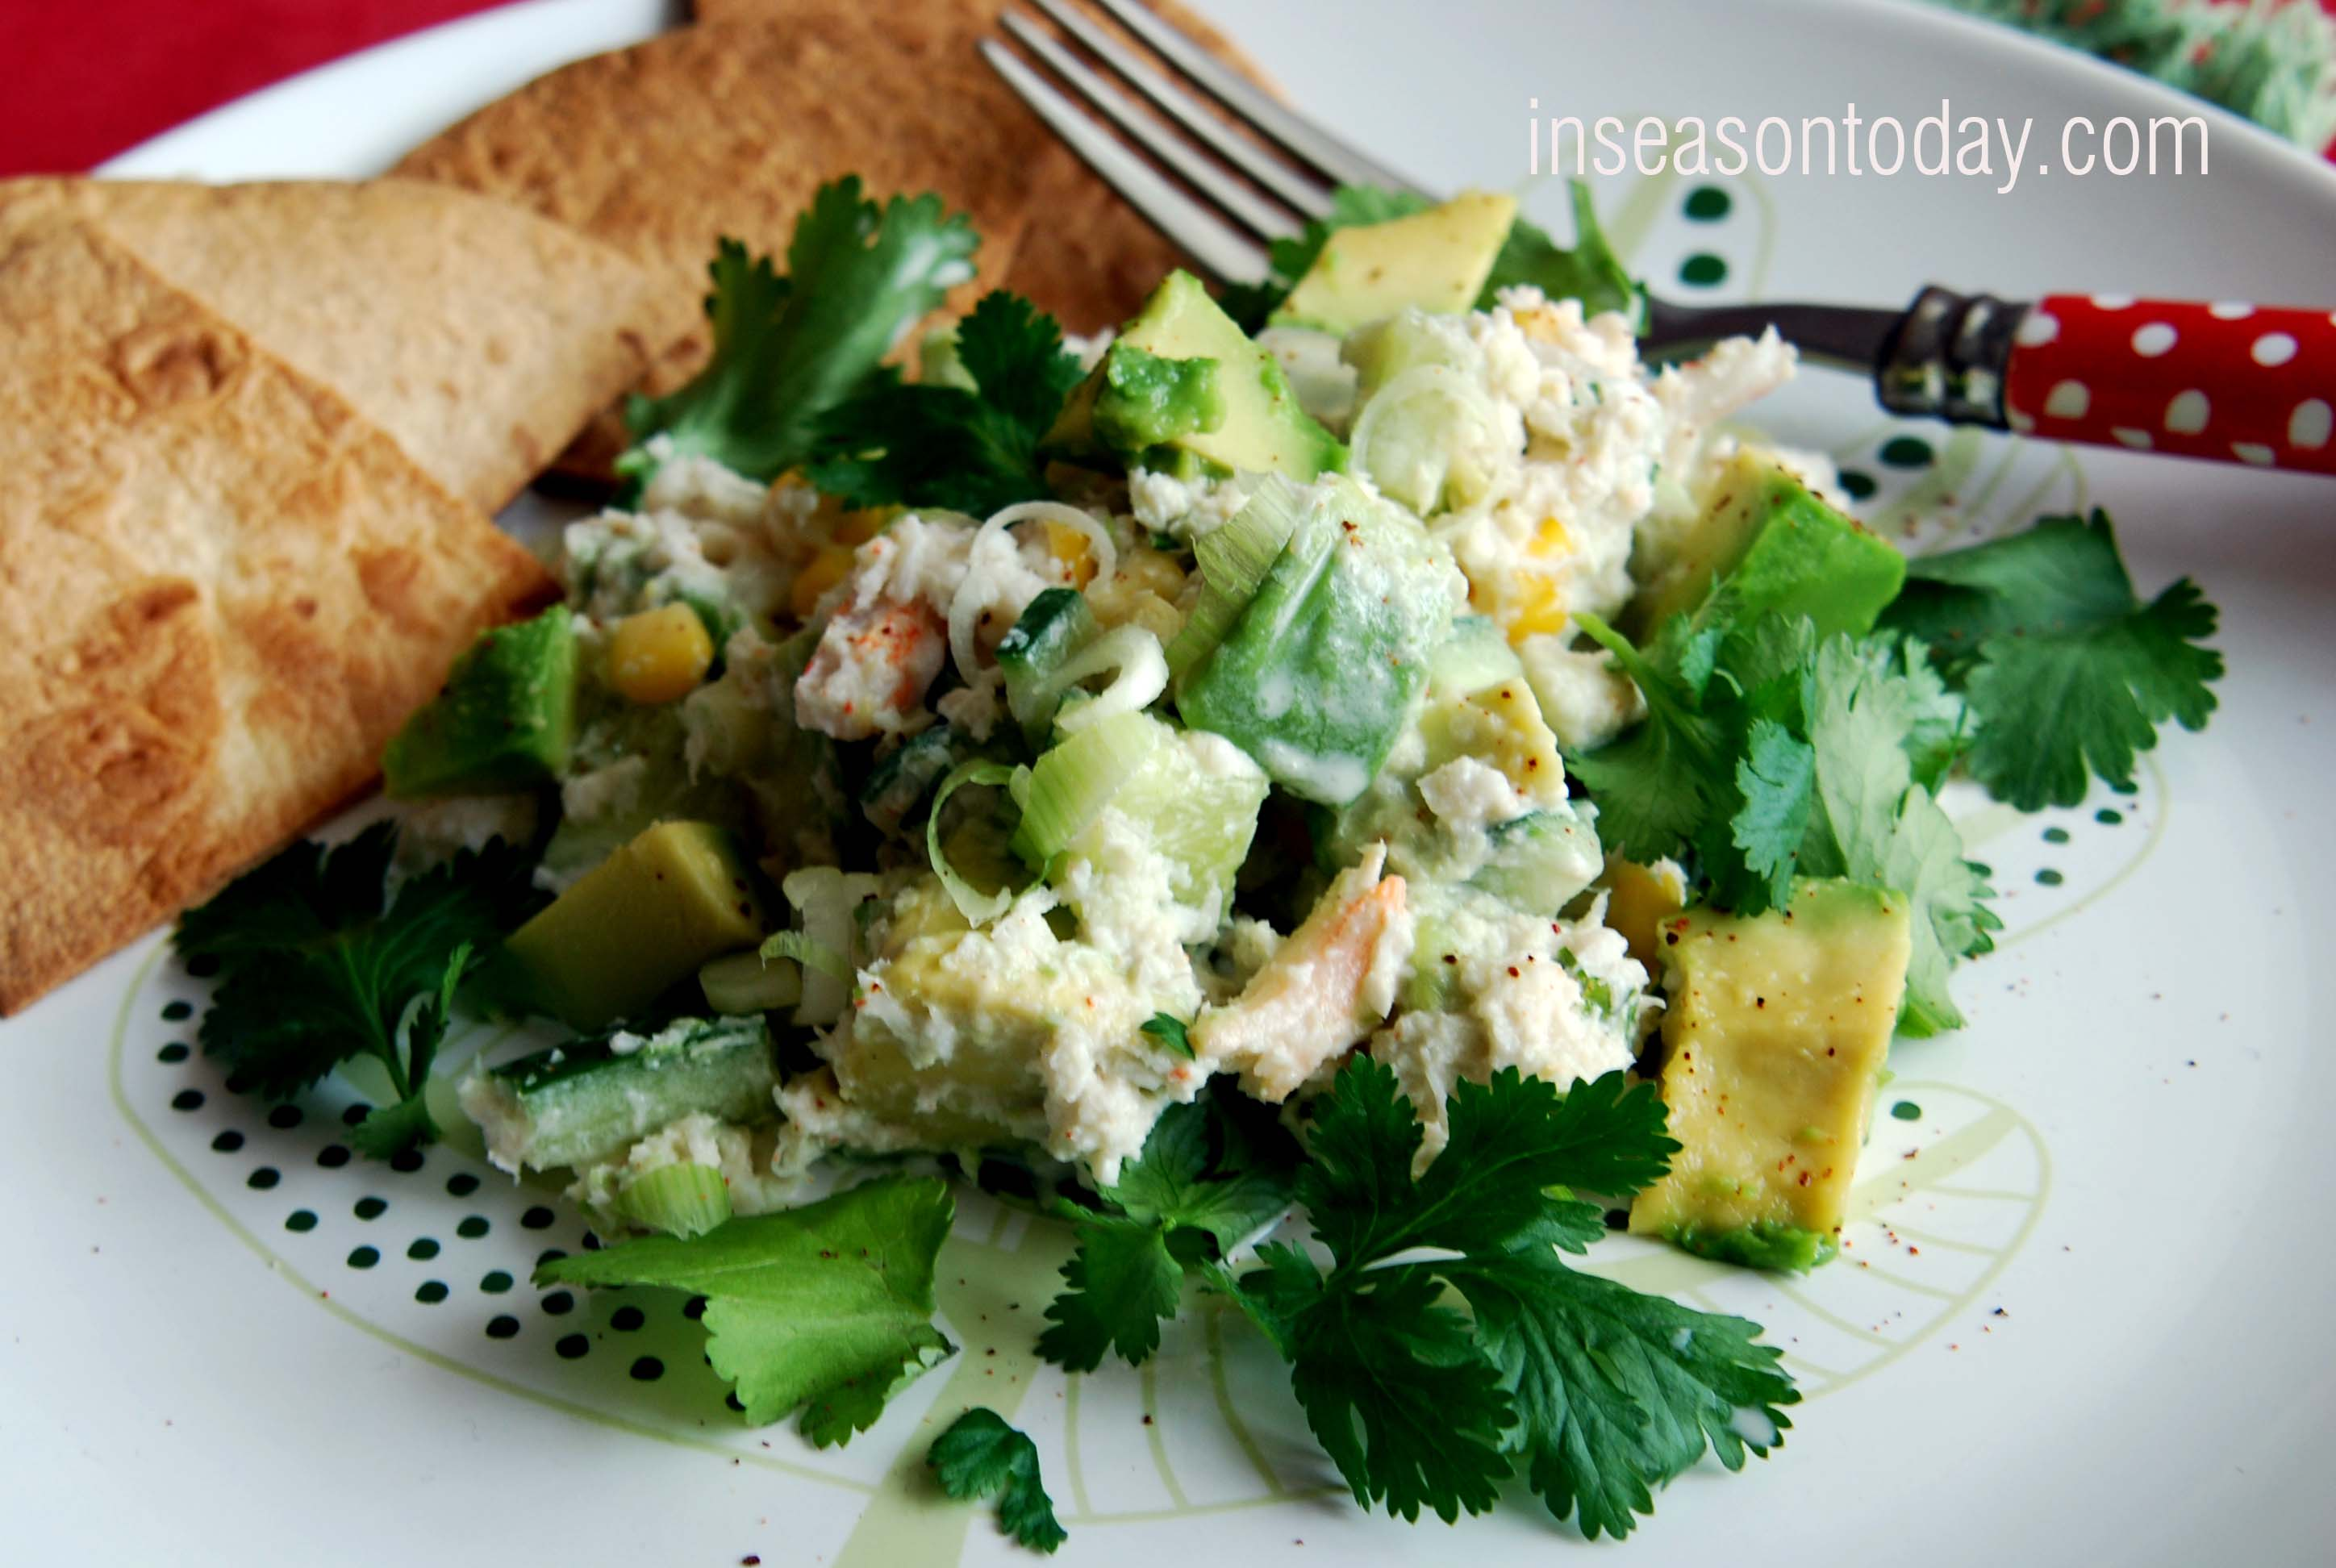 Creamy Avocado and Crab Salad With Toasted Tortillas 3